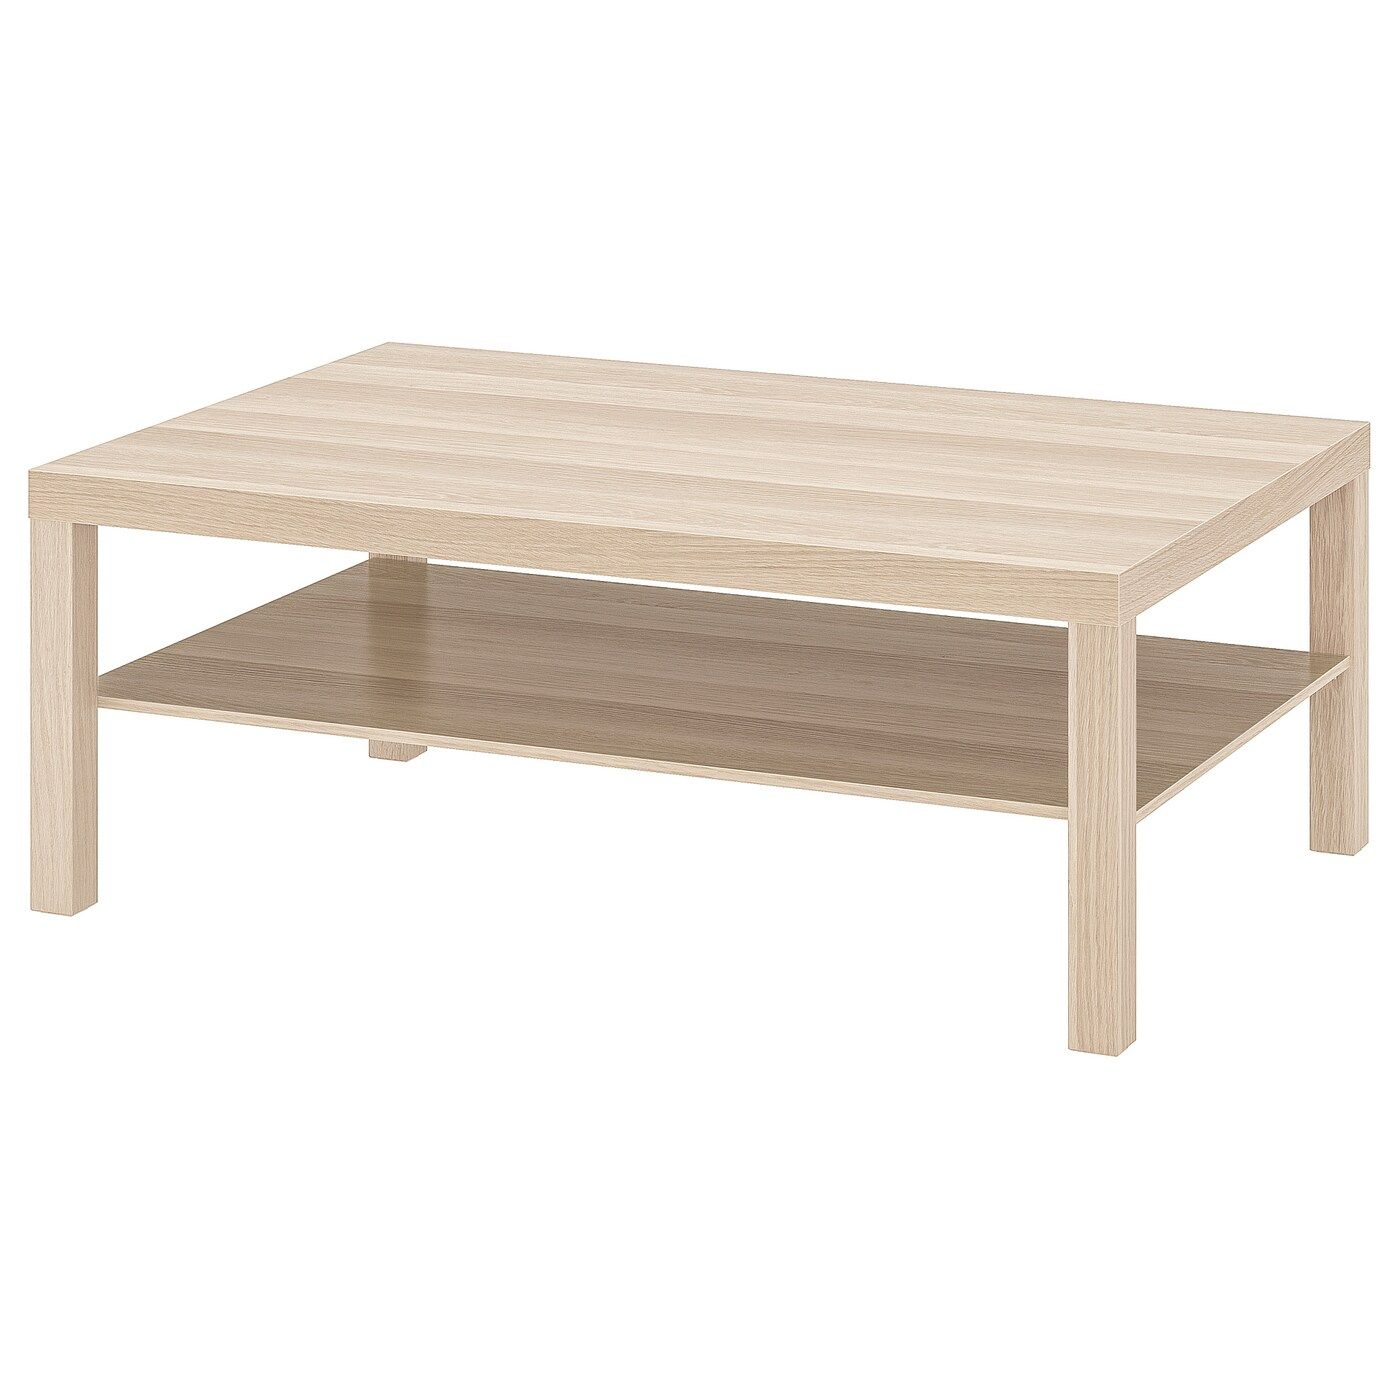 Lack Coffee Table White Stained Oak Effect Ikea Canada Ikea Lack Coffee Table Ikea Lack Coffee Table Ikea Coffee Table [ 1400 x 1400 Pixel ]